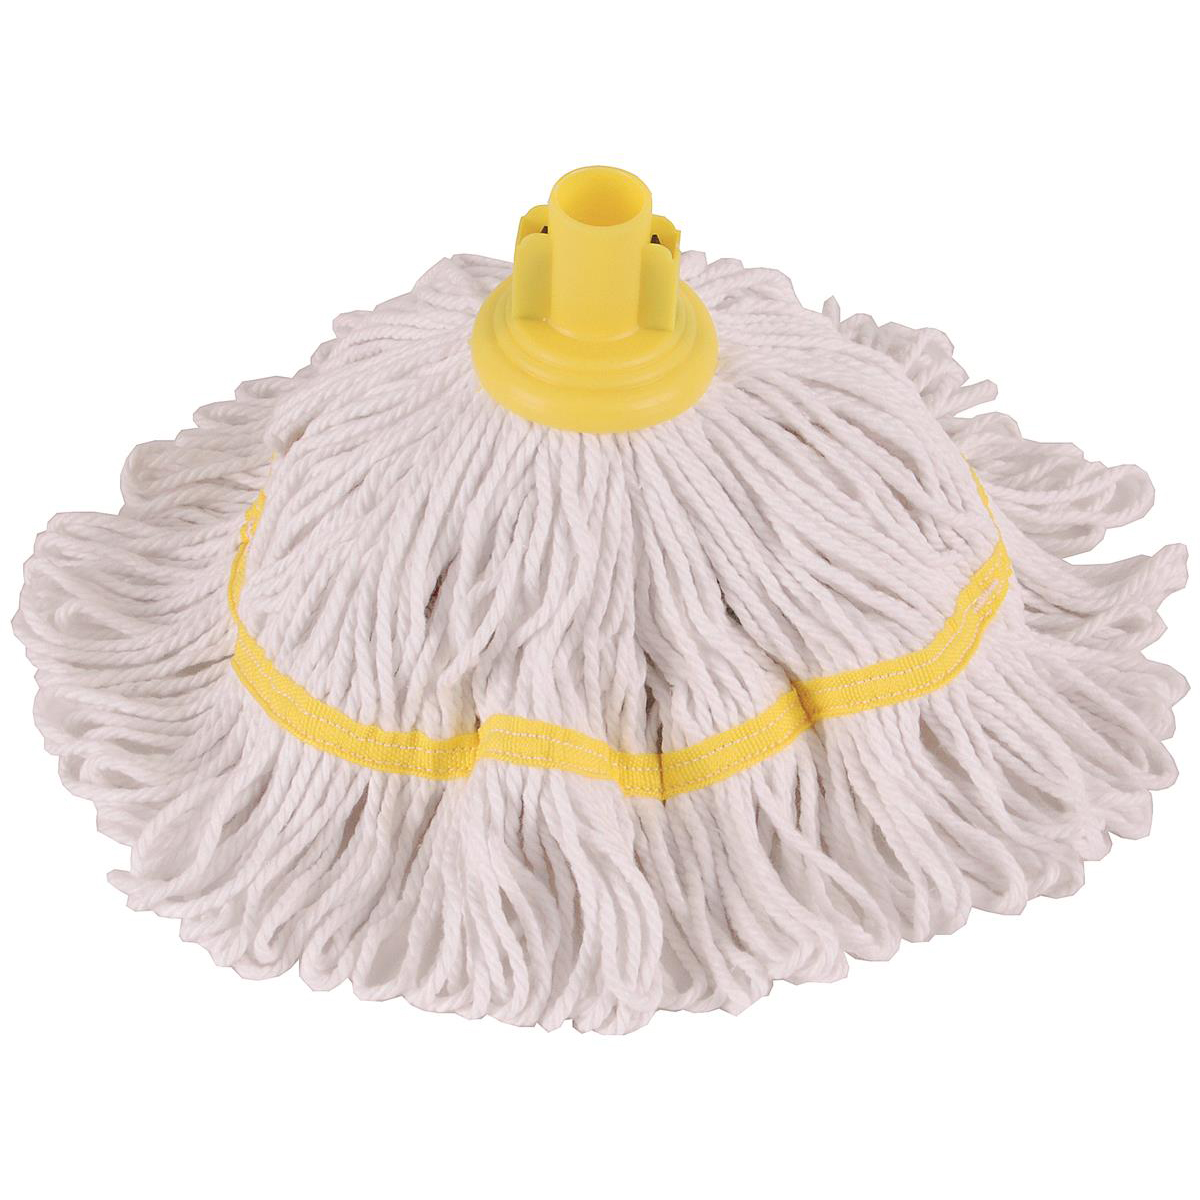 Robert Scott & Sons Hygiemix T1 Socket Cotton & Synthetic Colour-coded Mop 200g Yellow Ref 103062YELLOW